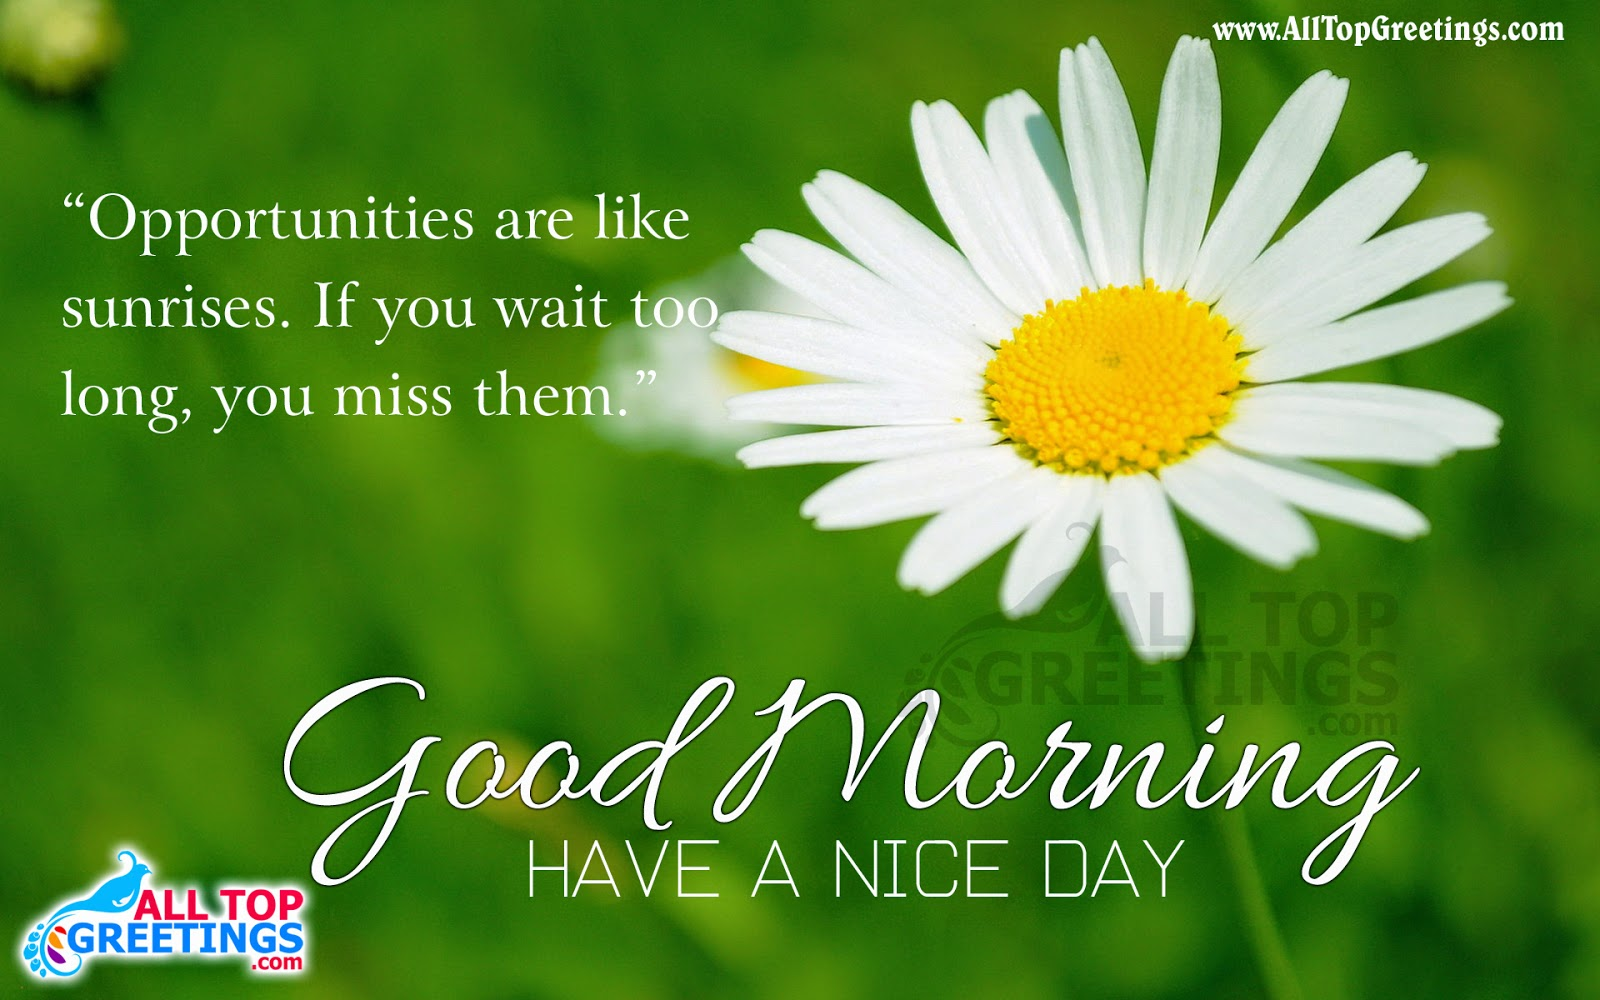 English Good Morning Greetings With Quote All Top Greetings